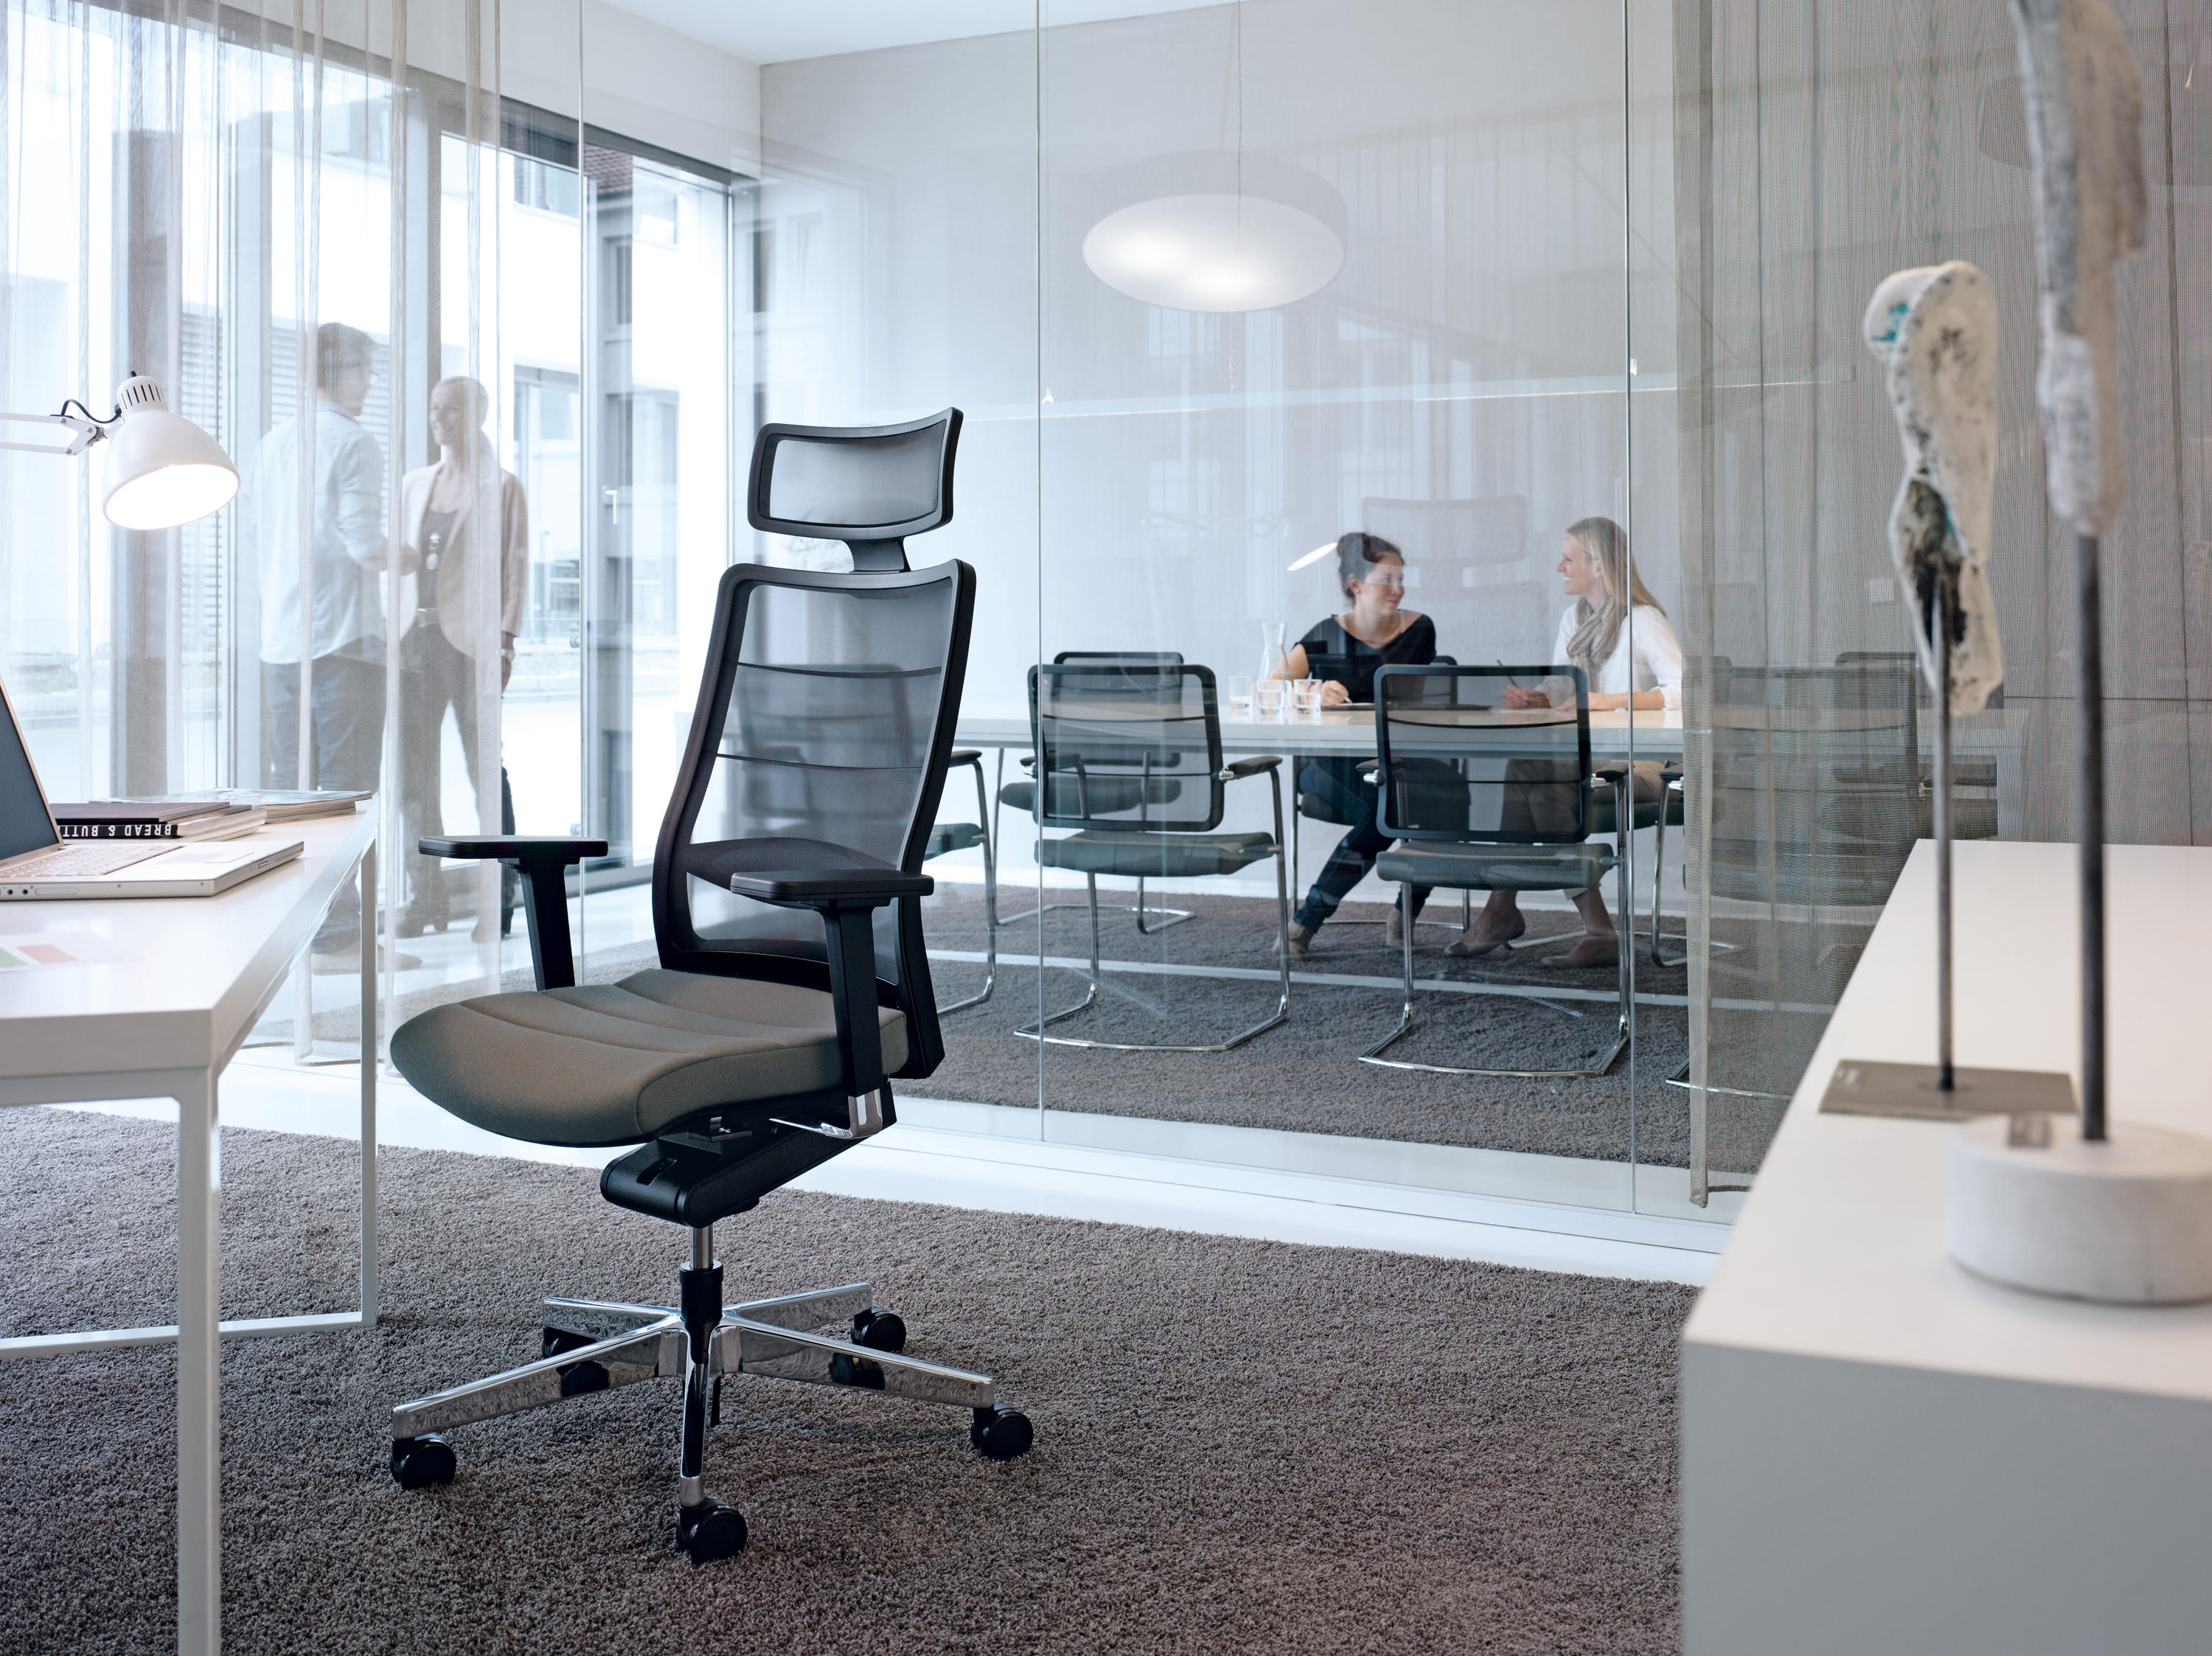 airpad 3c42 task chairs from interstuhl b rom bel gmbh co kg architonic. Black Bedroom Furniture Sets. Home Design Ideas